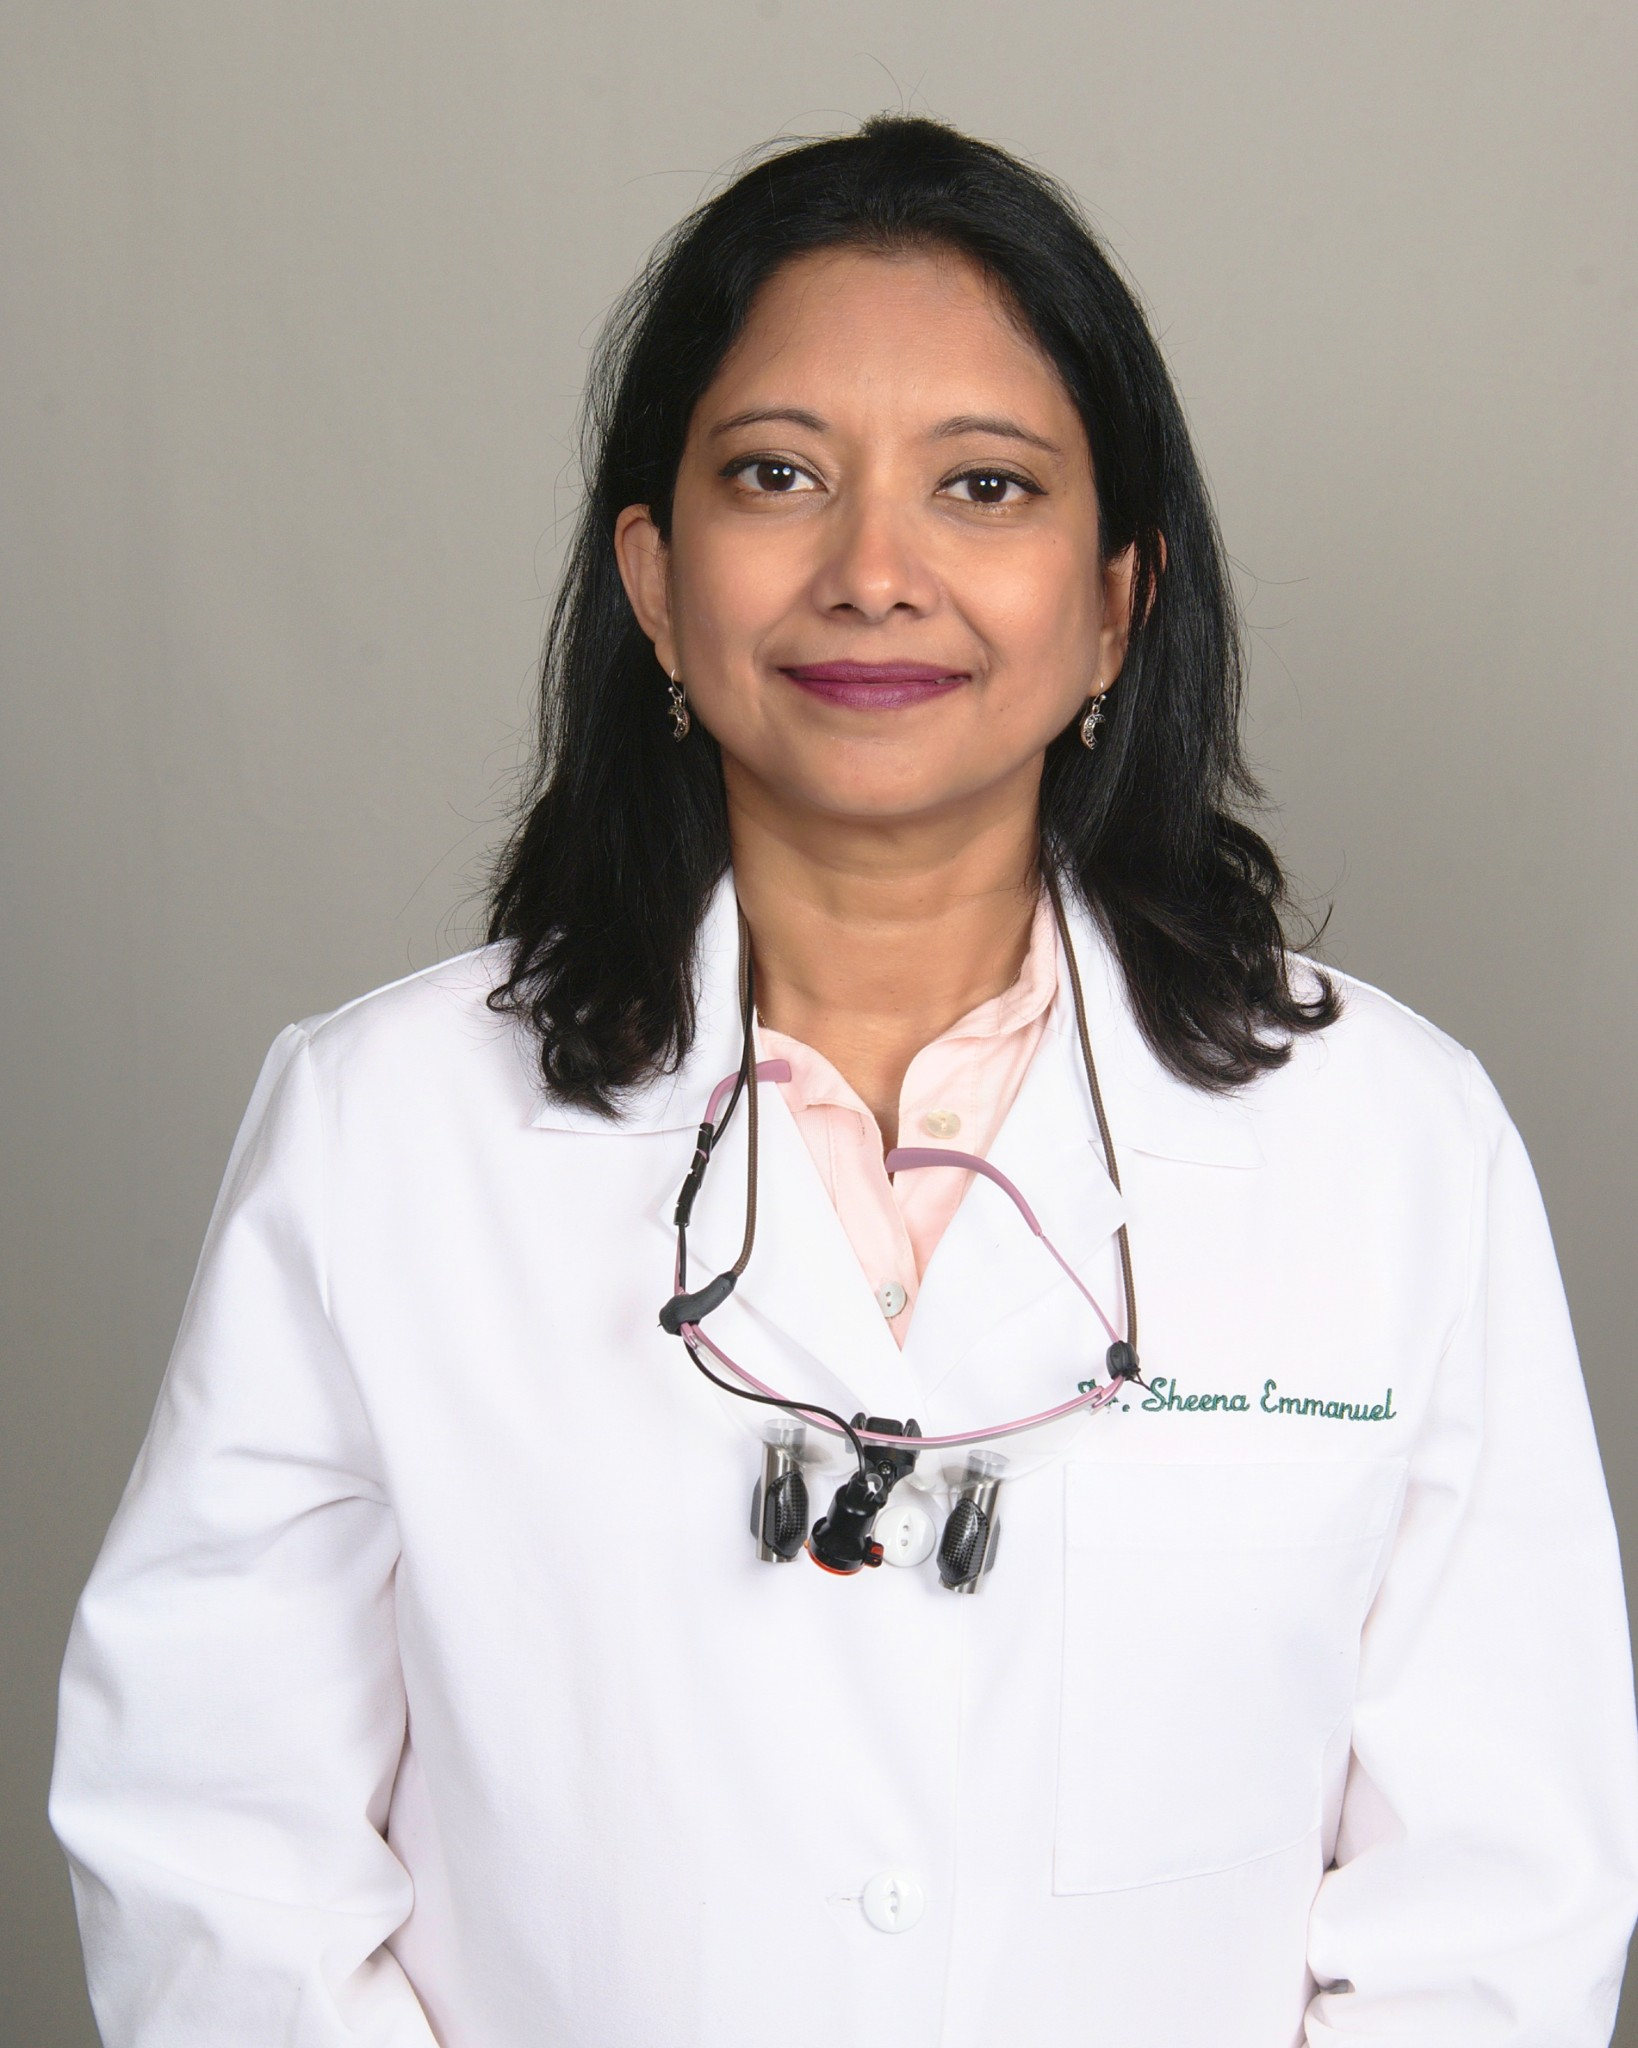 Dr. Sheena Emmanuel, DMD | American Dental Care of Harrisburg